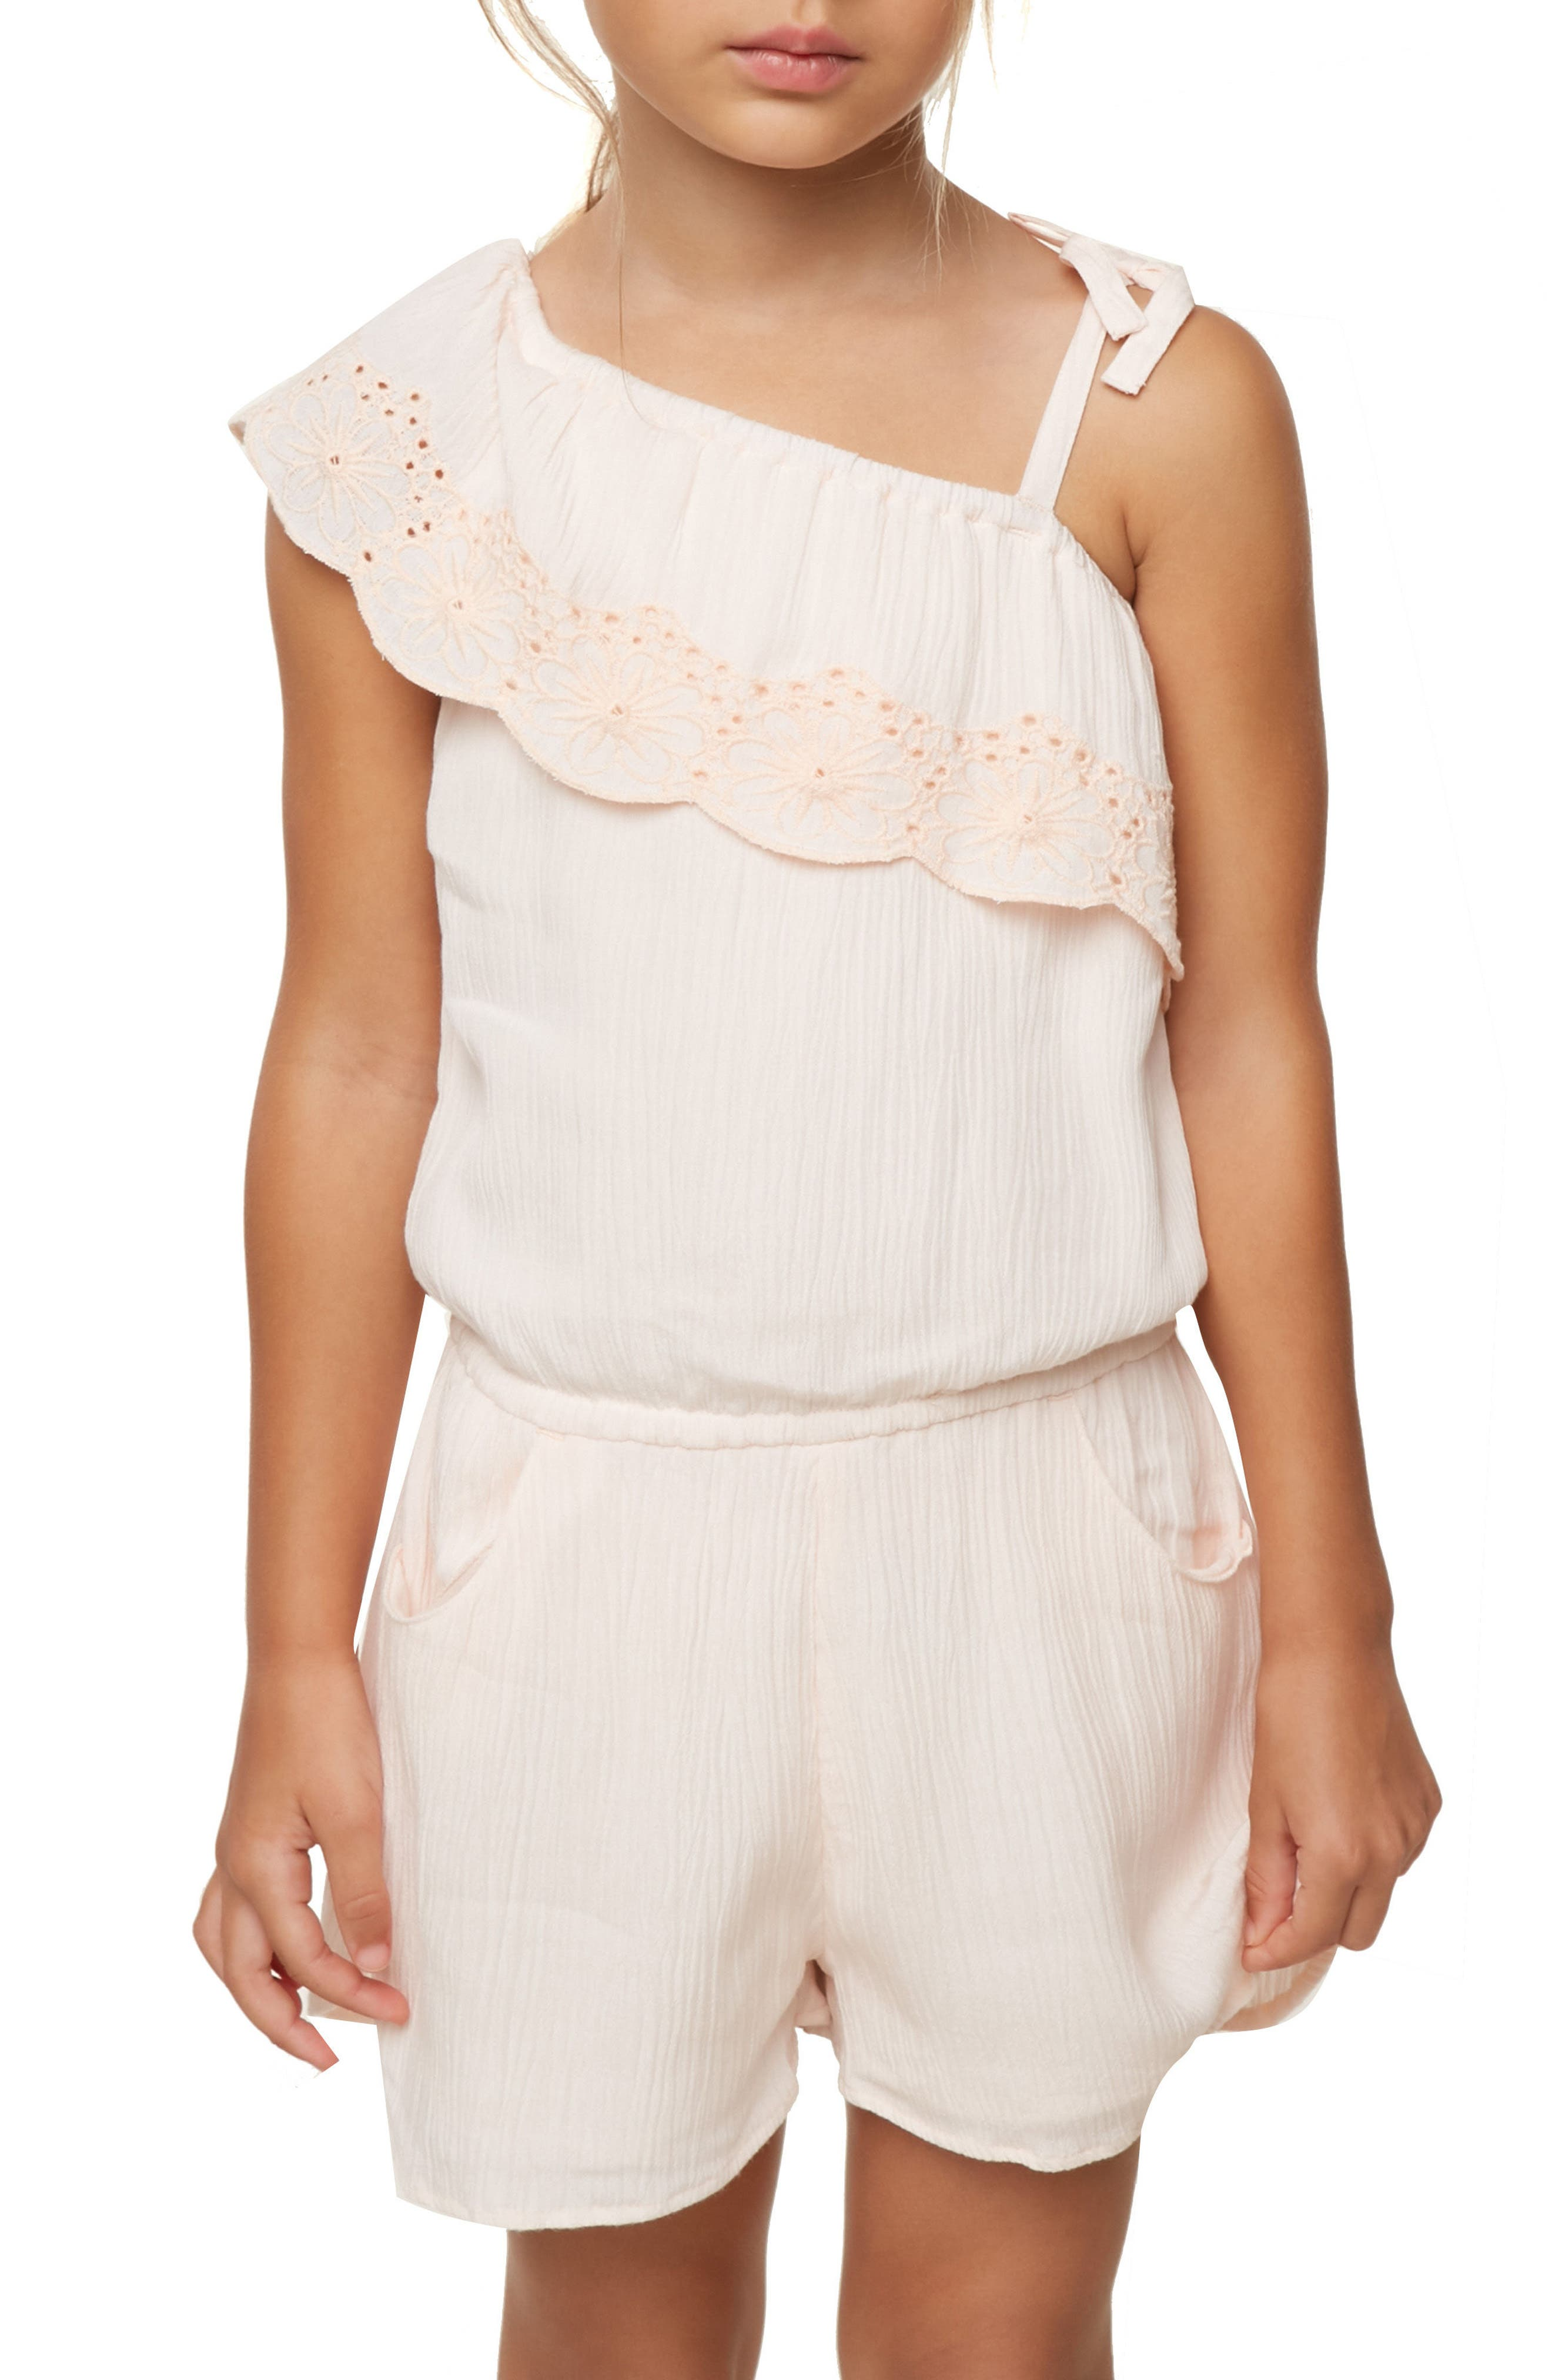 Lanai One-Shoulder Romper,                             Alternate thumbnail 3, color,                             PEACH BLUSH